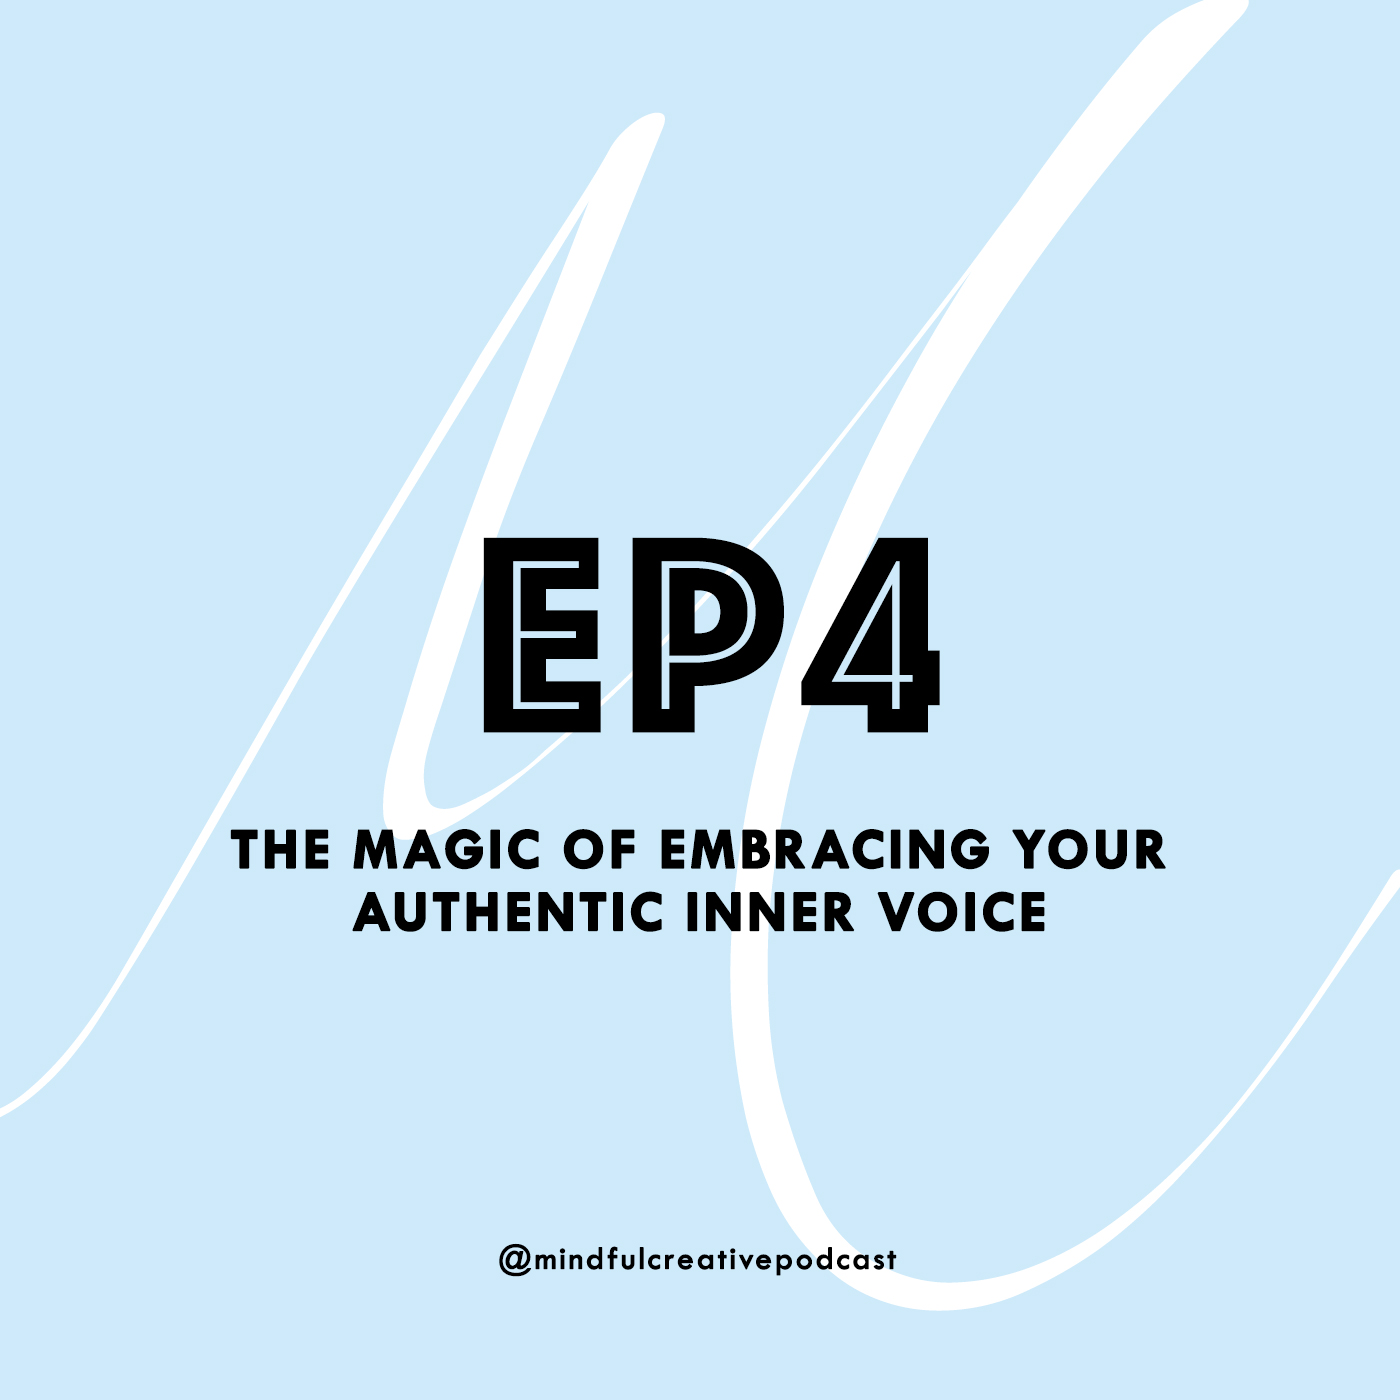 The Mindful Creative Podcast: Episode 4 - The Magic of Embracing Your Authentic Inner Voice.